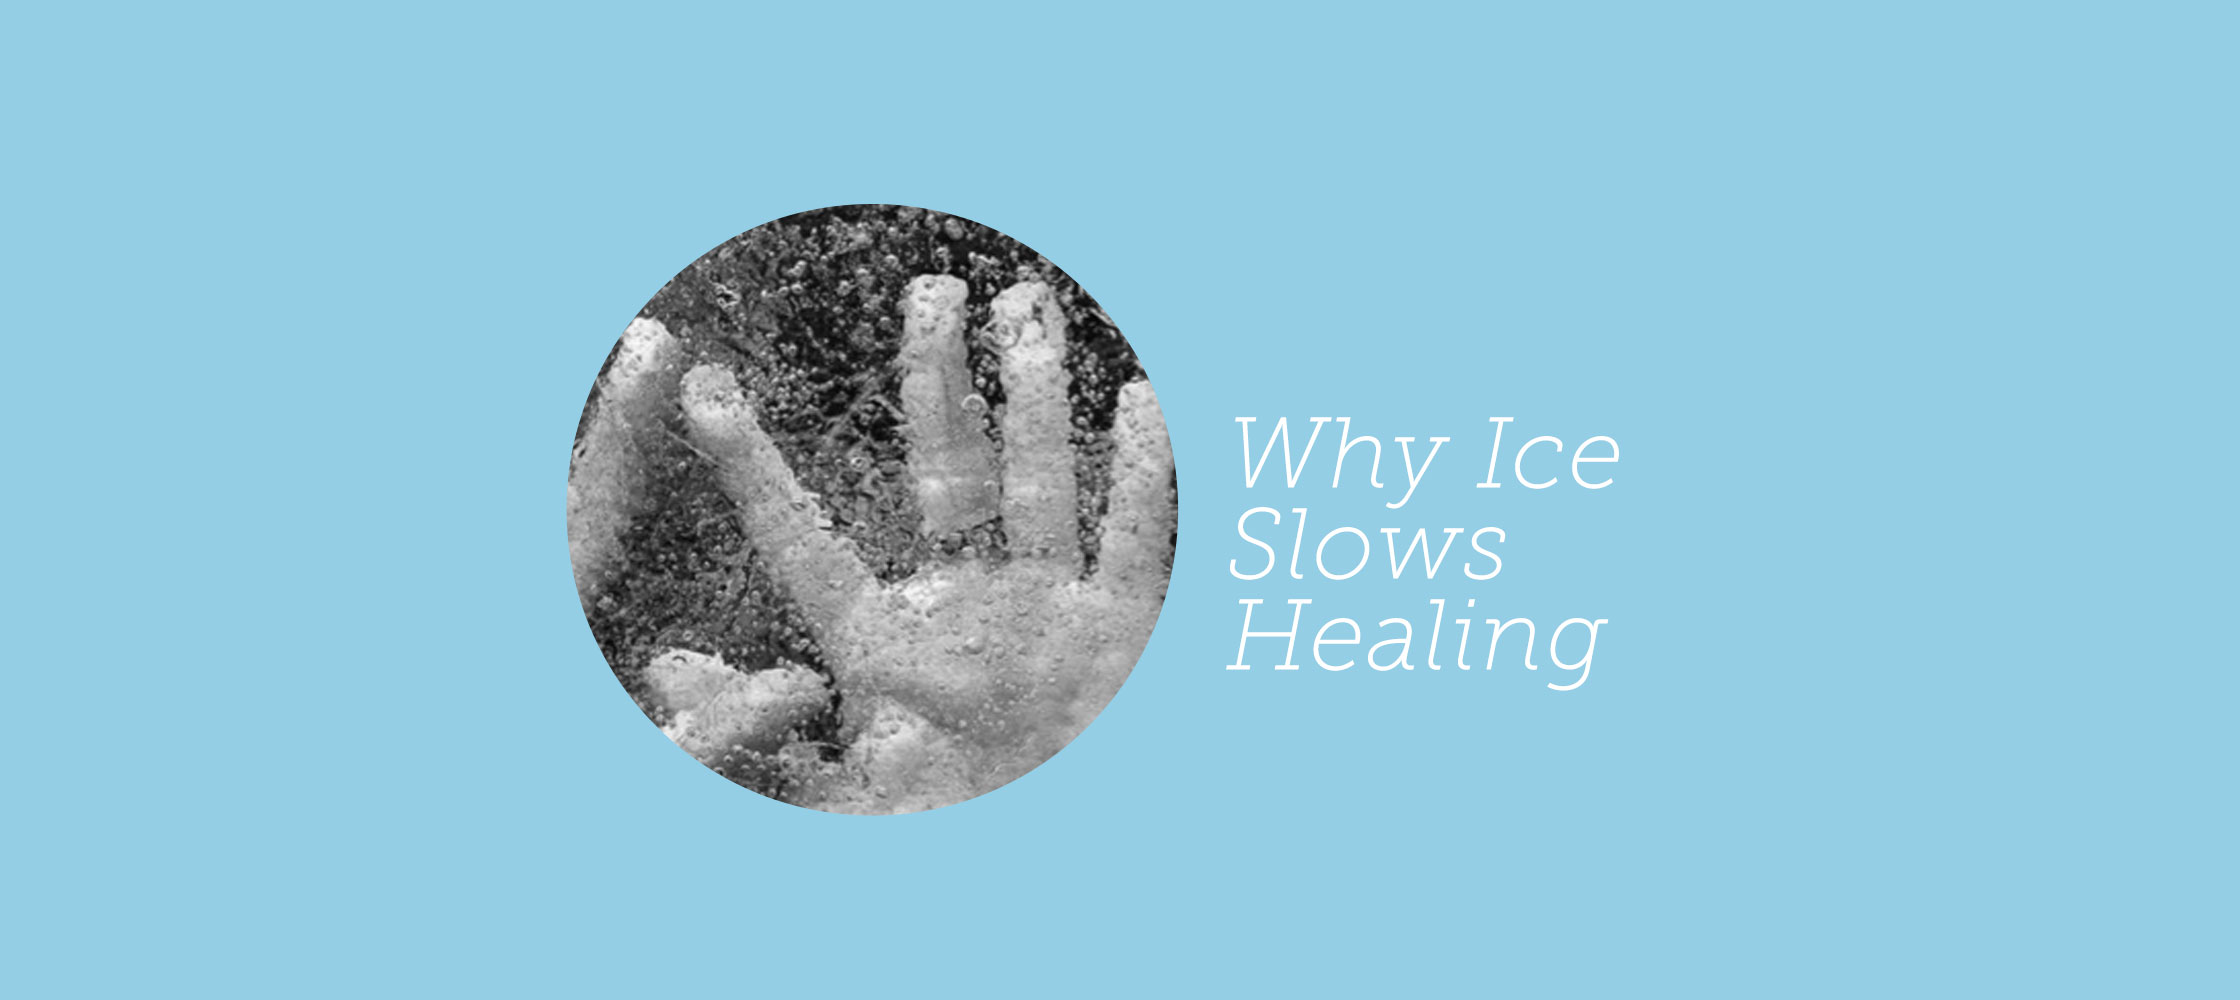 211-why-ice-slows-healing